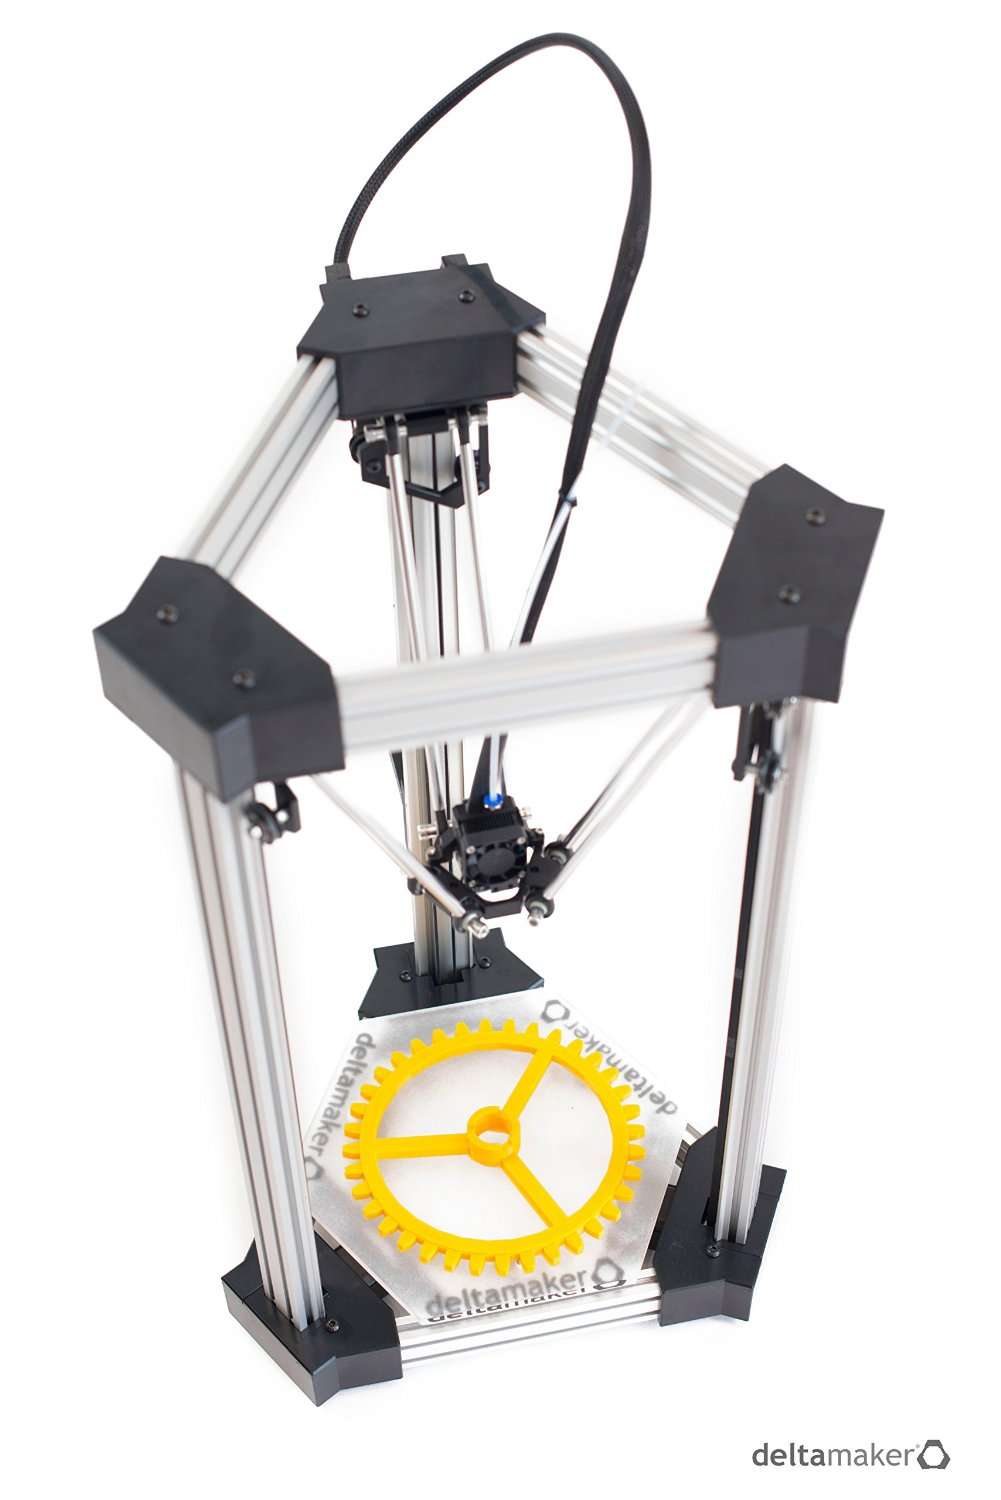 3D Printer Review: DeltaMaker